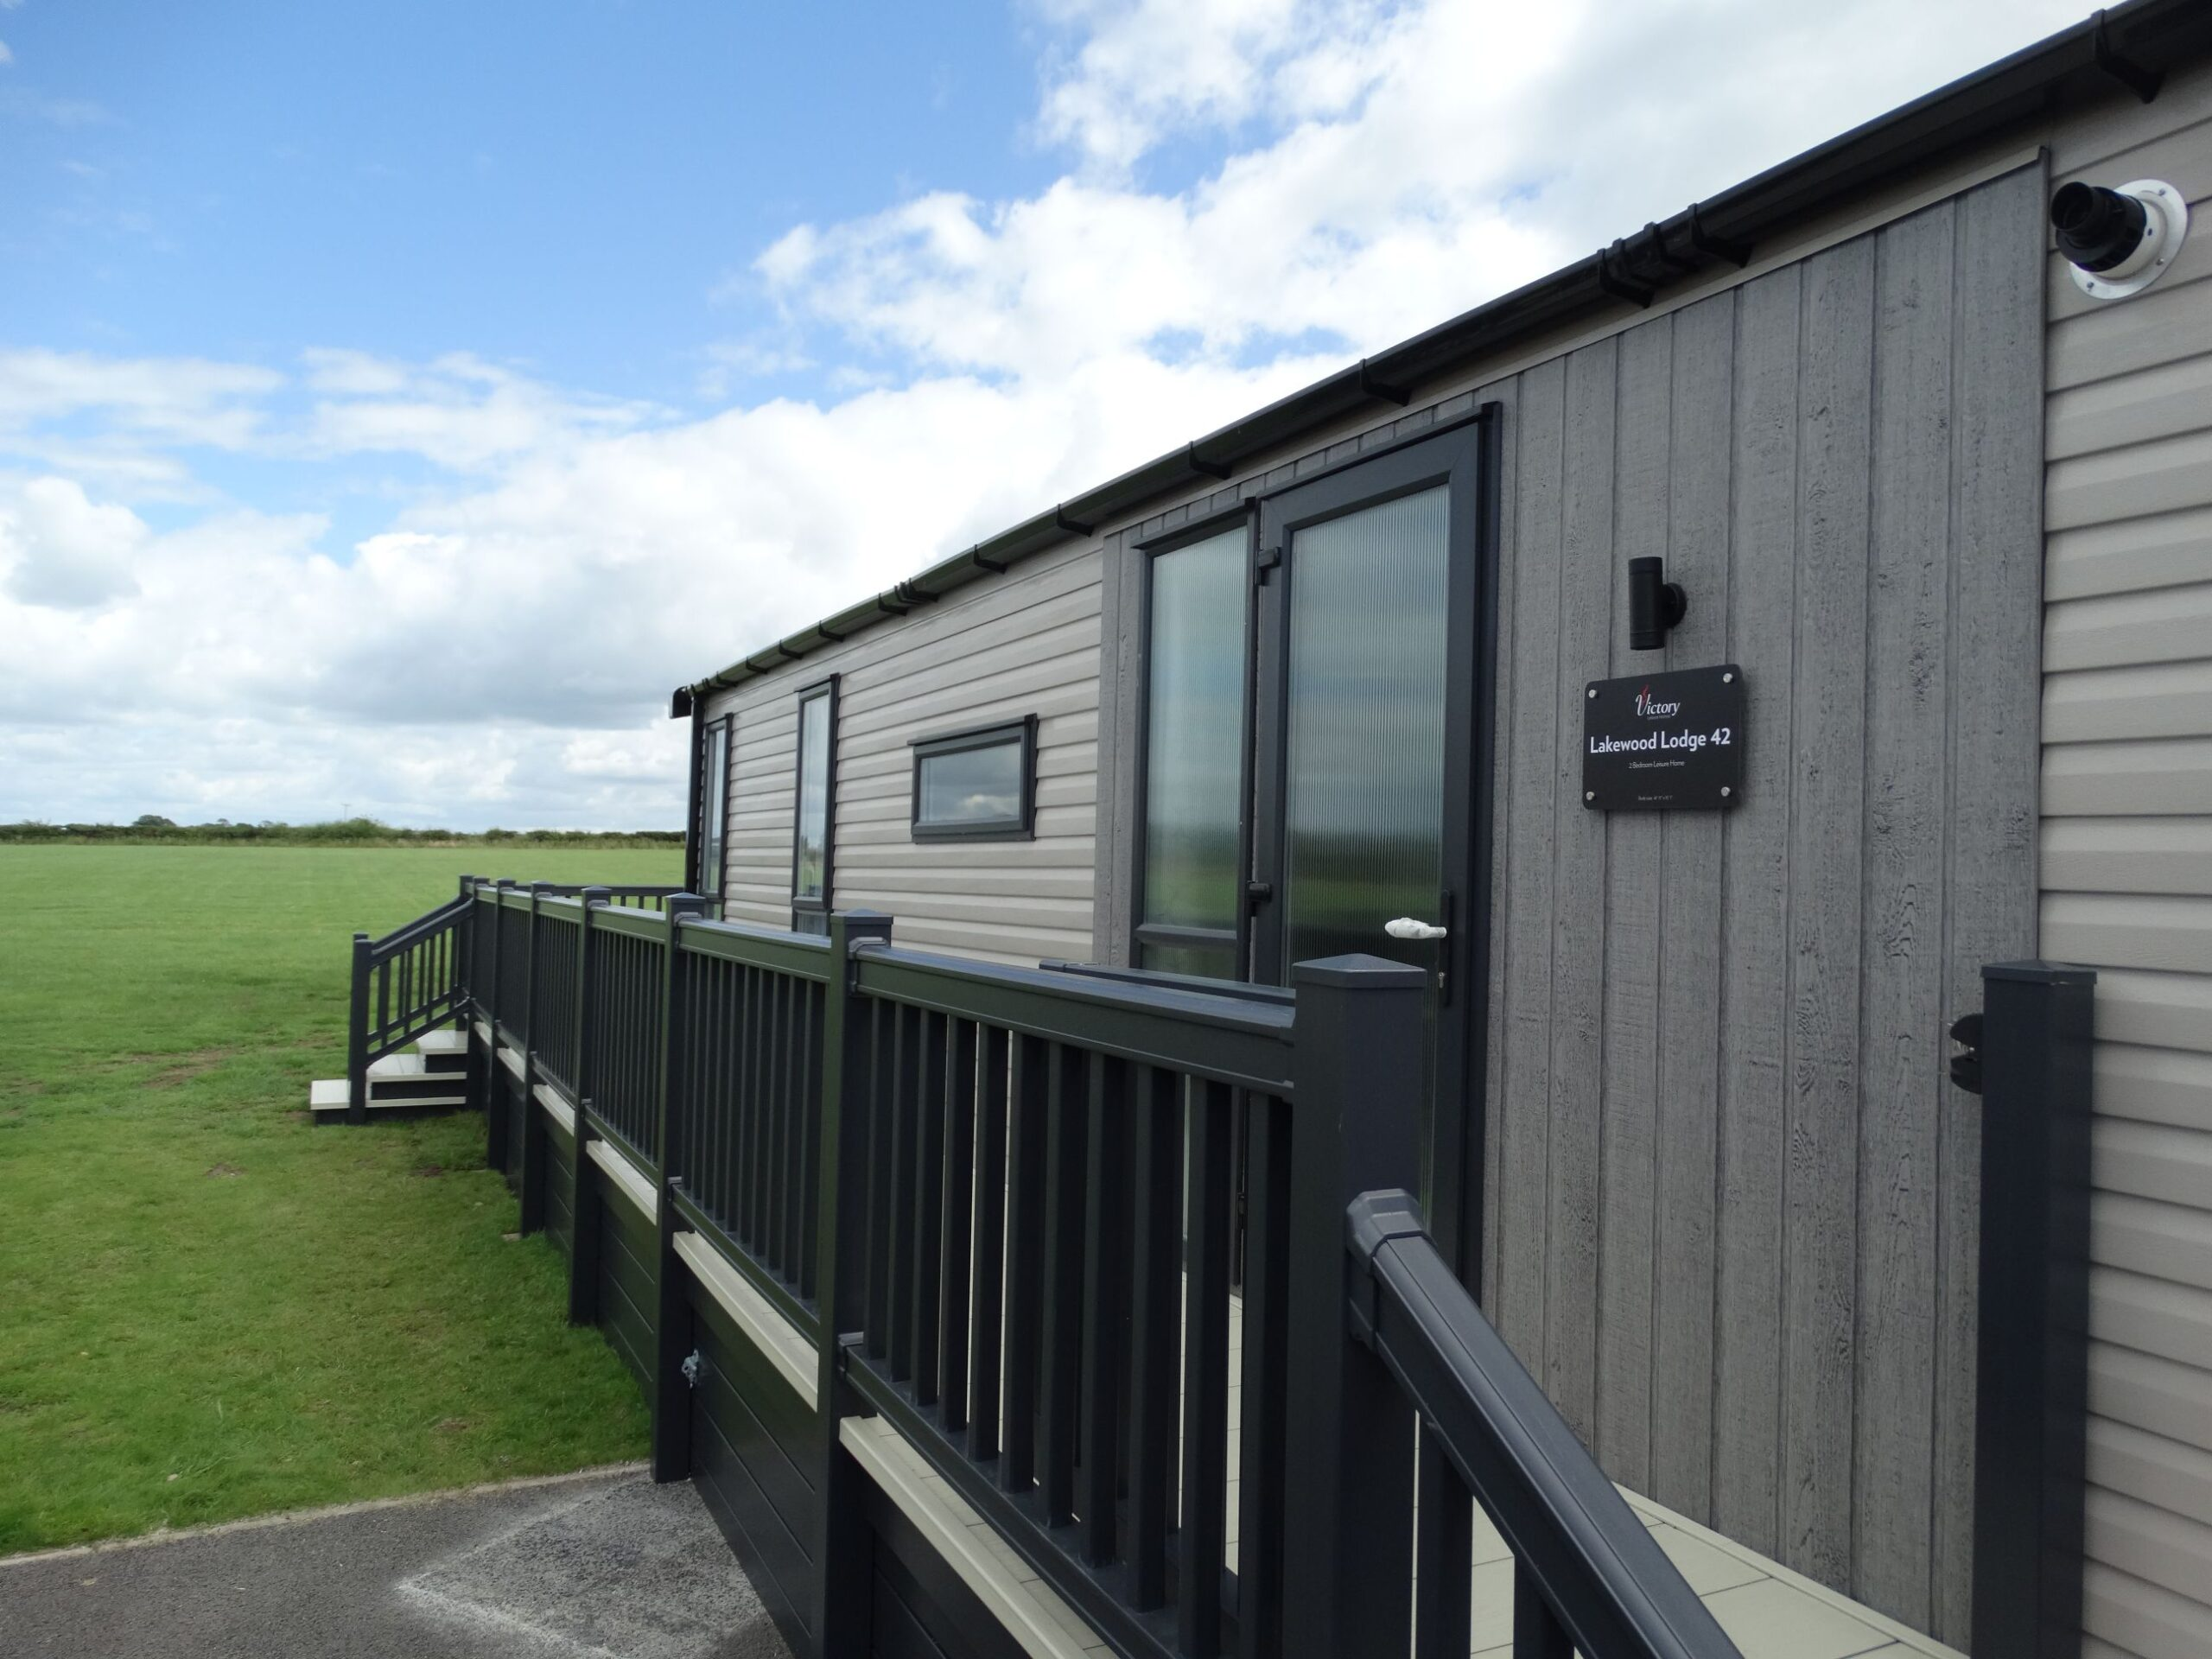 Victory Lakewood Lodge – Green Meadows Country Park